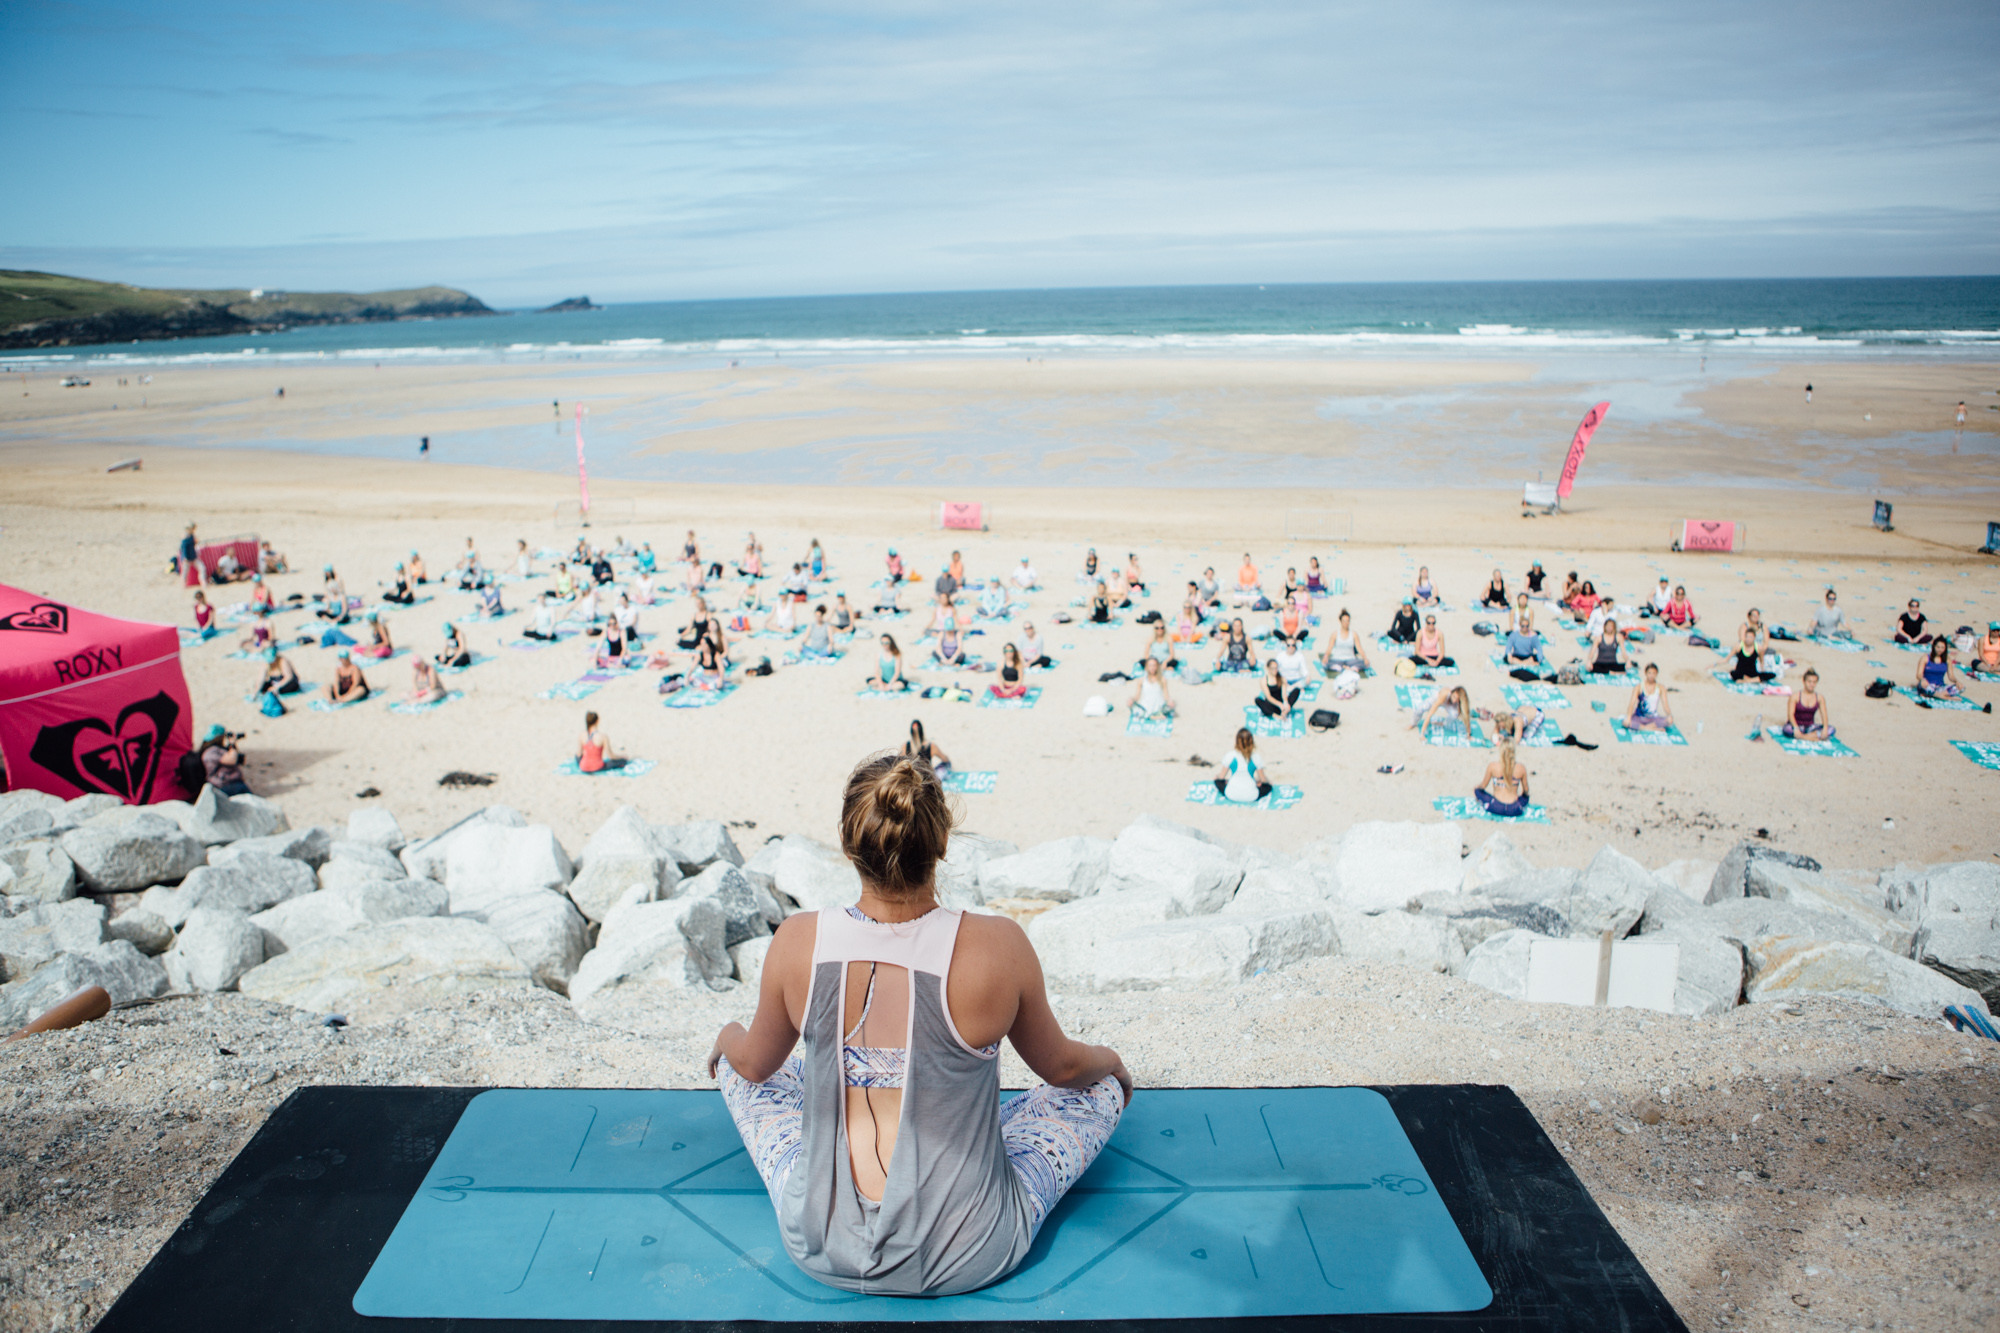 Very Public Yoga situation